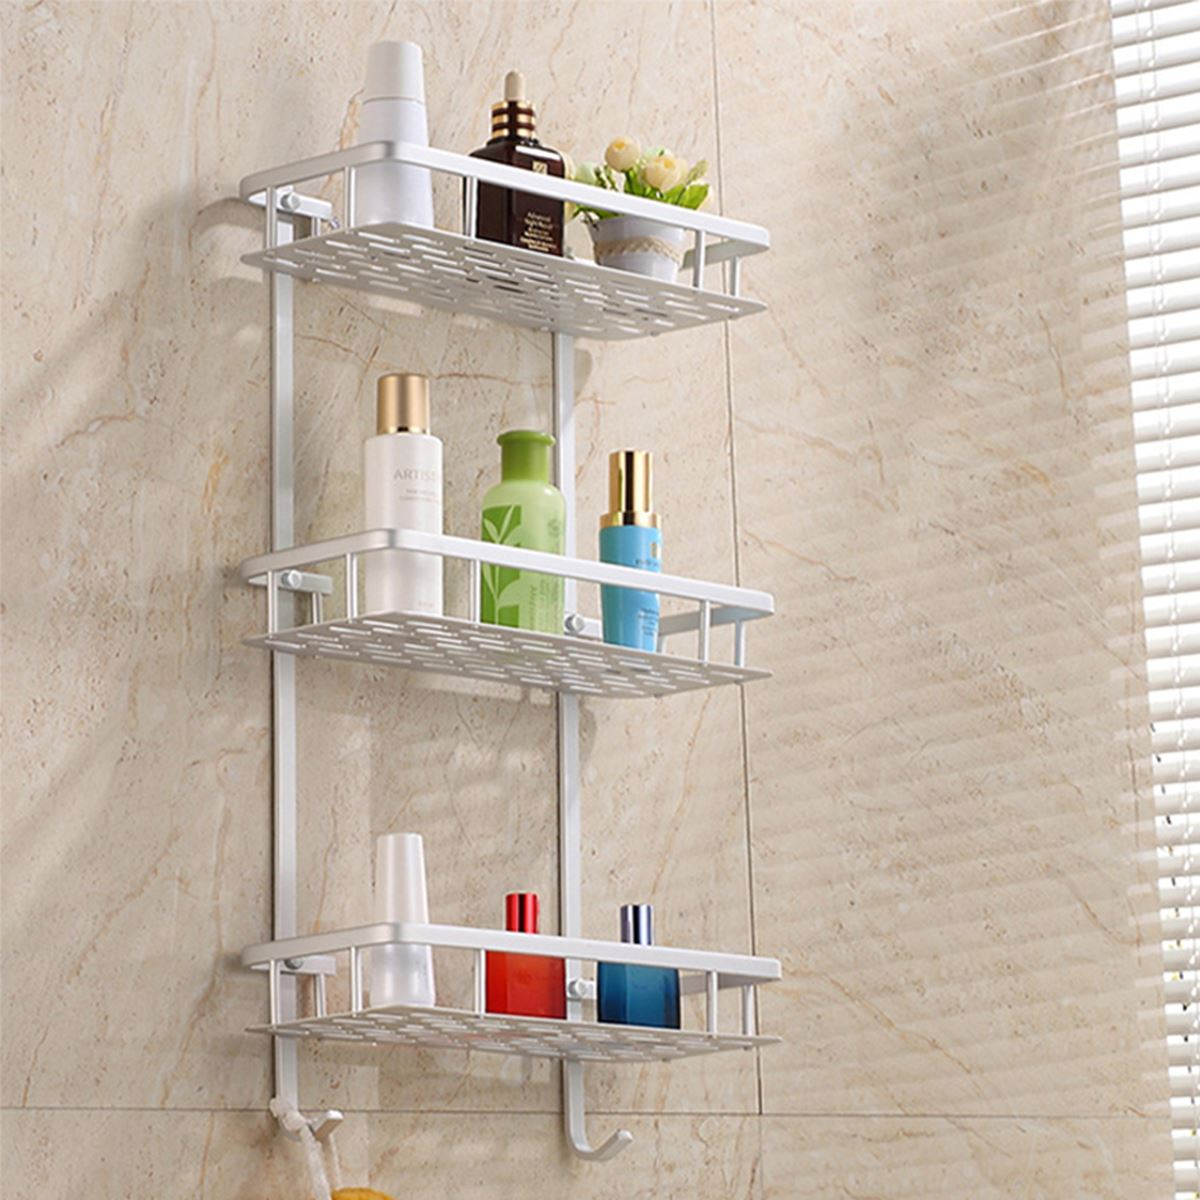 3 tier storage shelf bathroom towel aluminium rack shower caddy kitchen wall mount soap dish. Black Bedroom Furniture Sets. Home Design Ideas